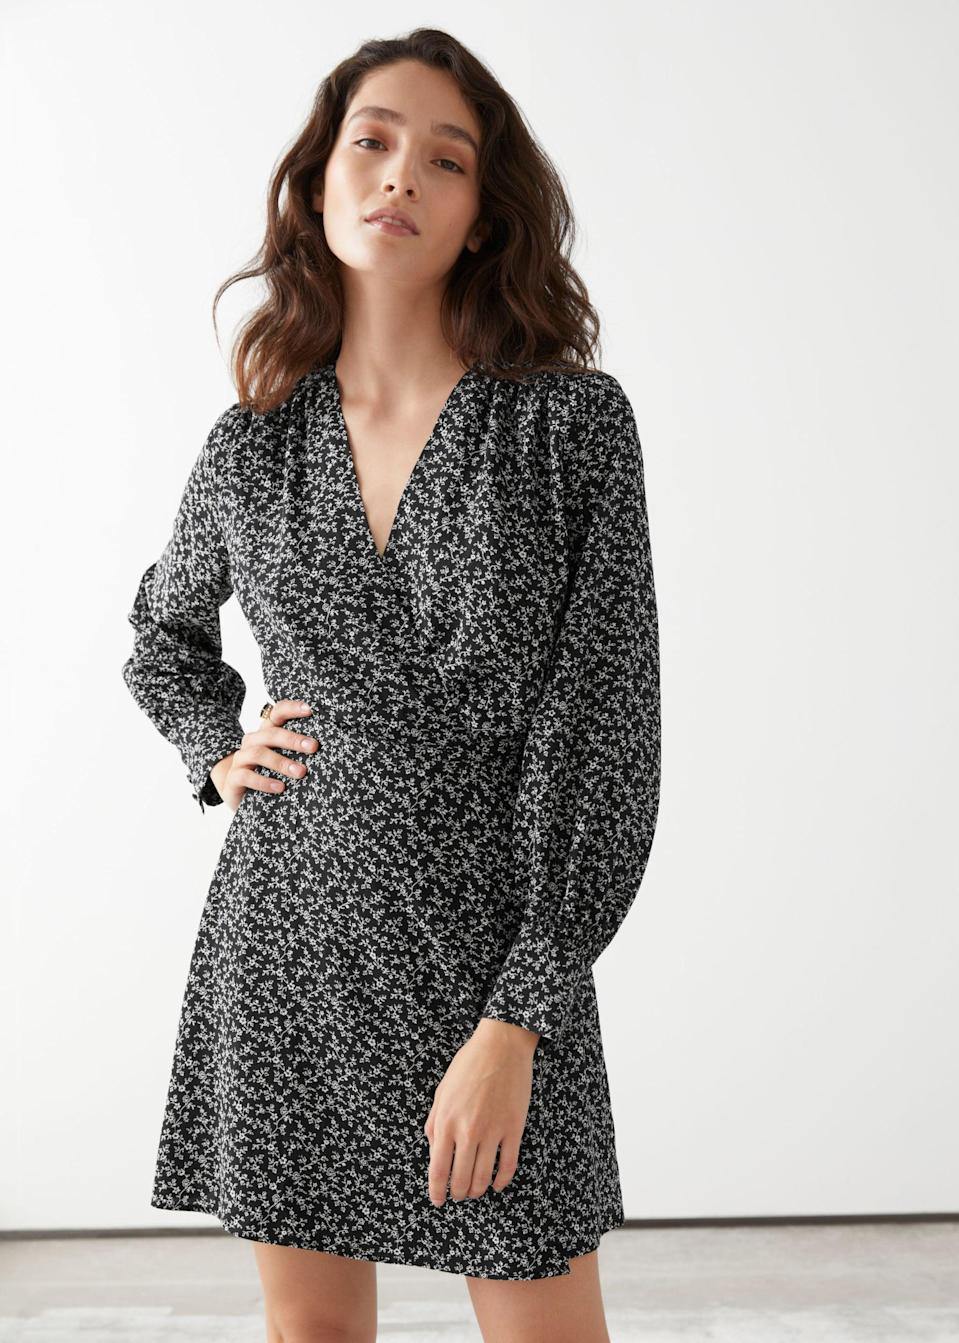 <p>This <span>&amp; Other Stories Mini Wrap Dress</span> ($44, originally $89) will look great with strappy heels or Keds sneakers.</p>